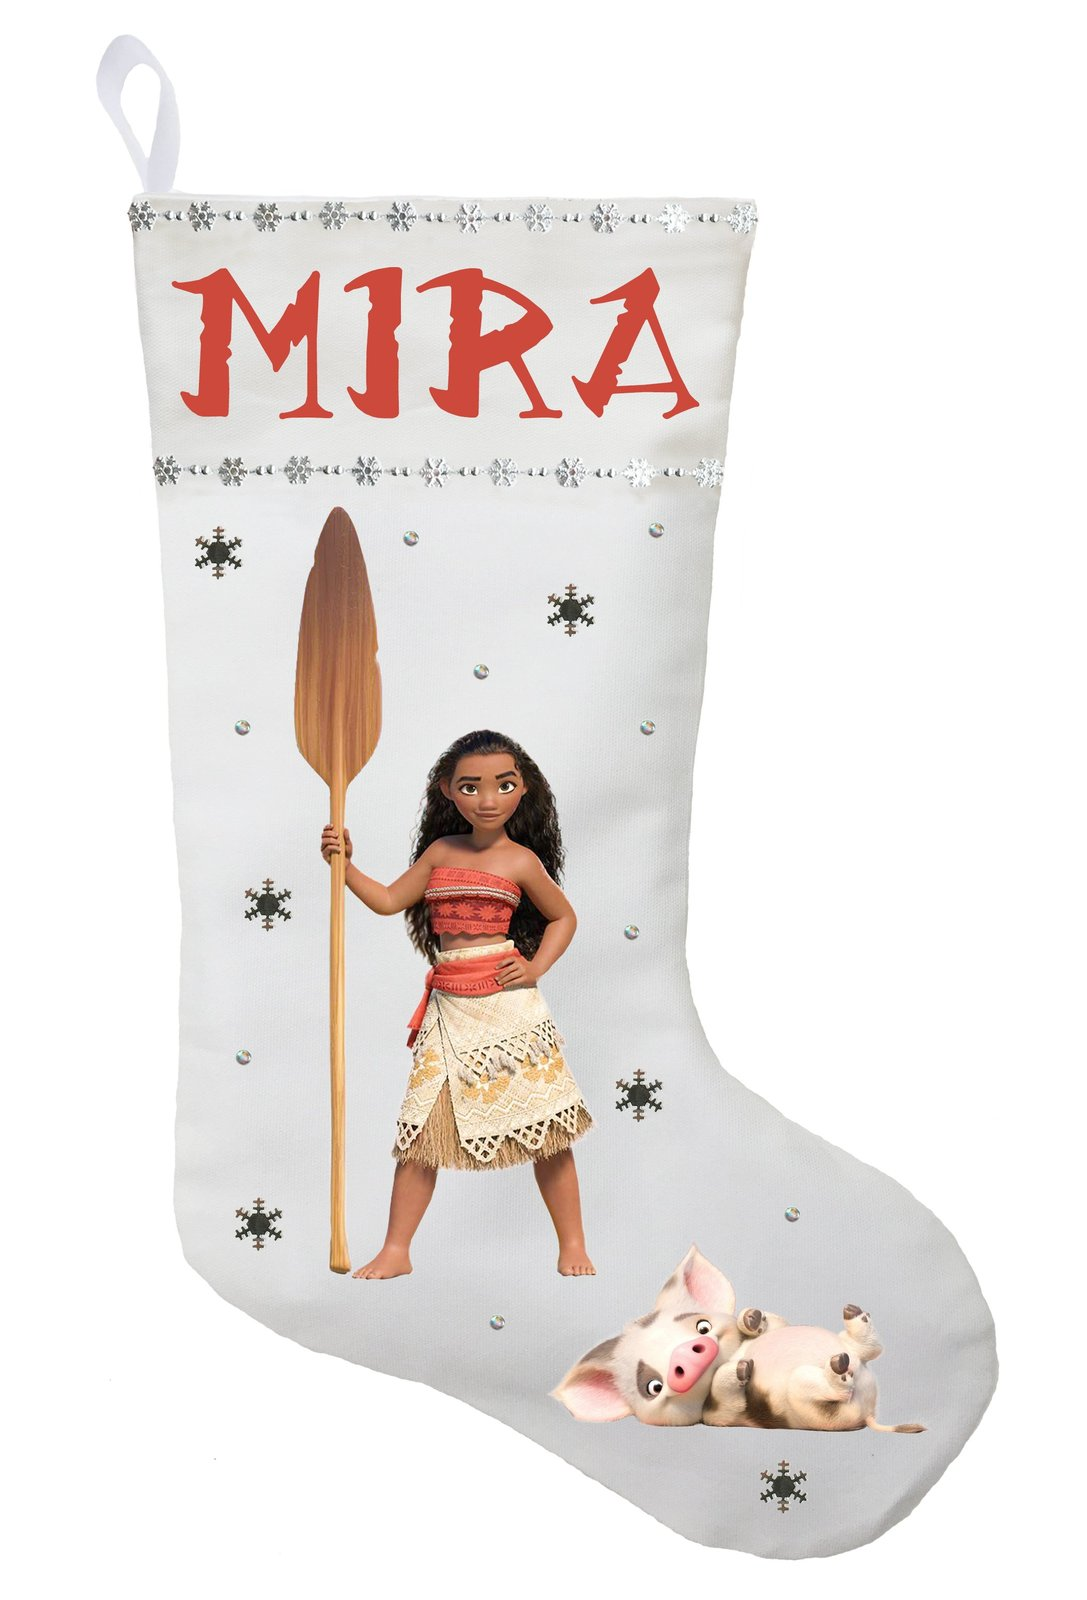 Moana Christmas Stocking - Personalized and Hand Princess Moana Stocking